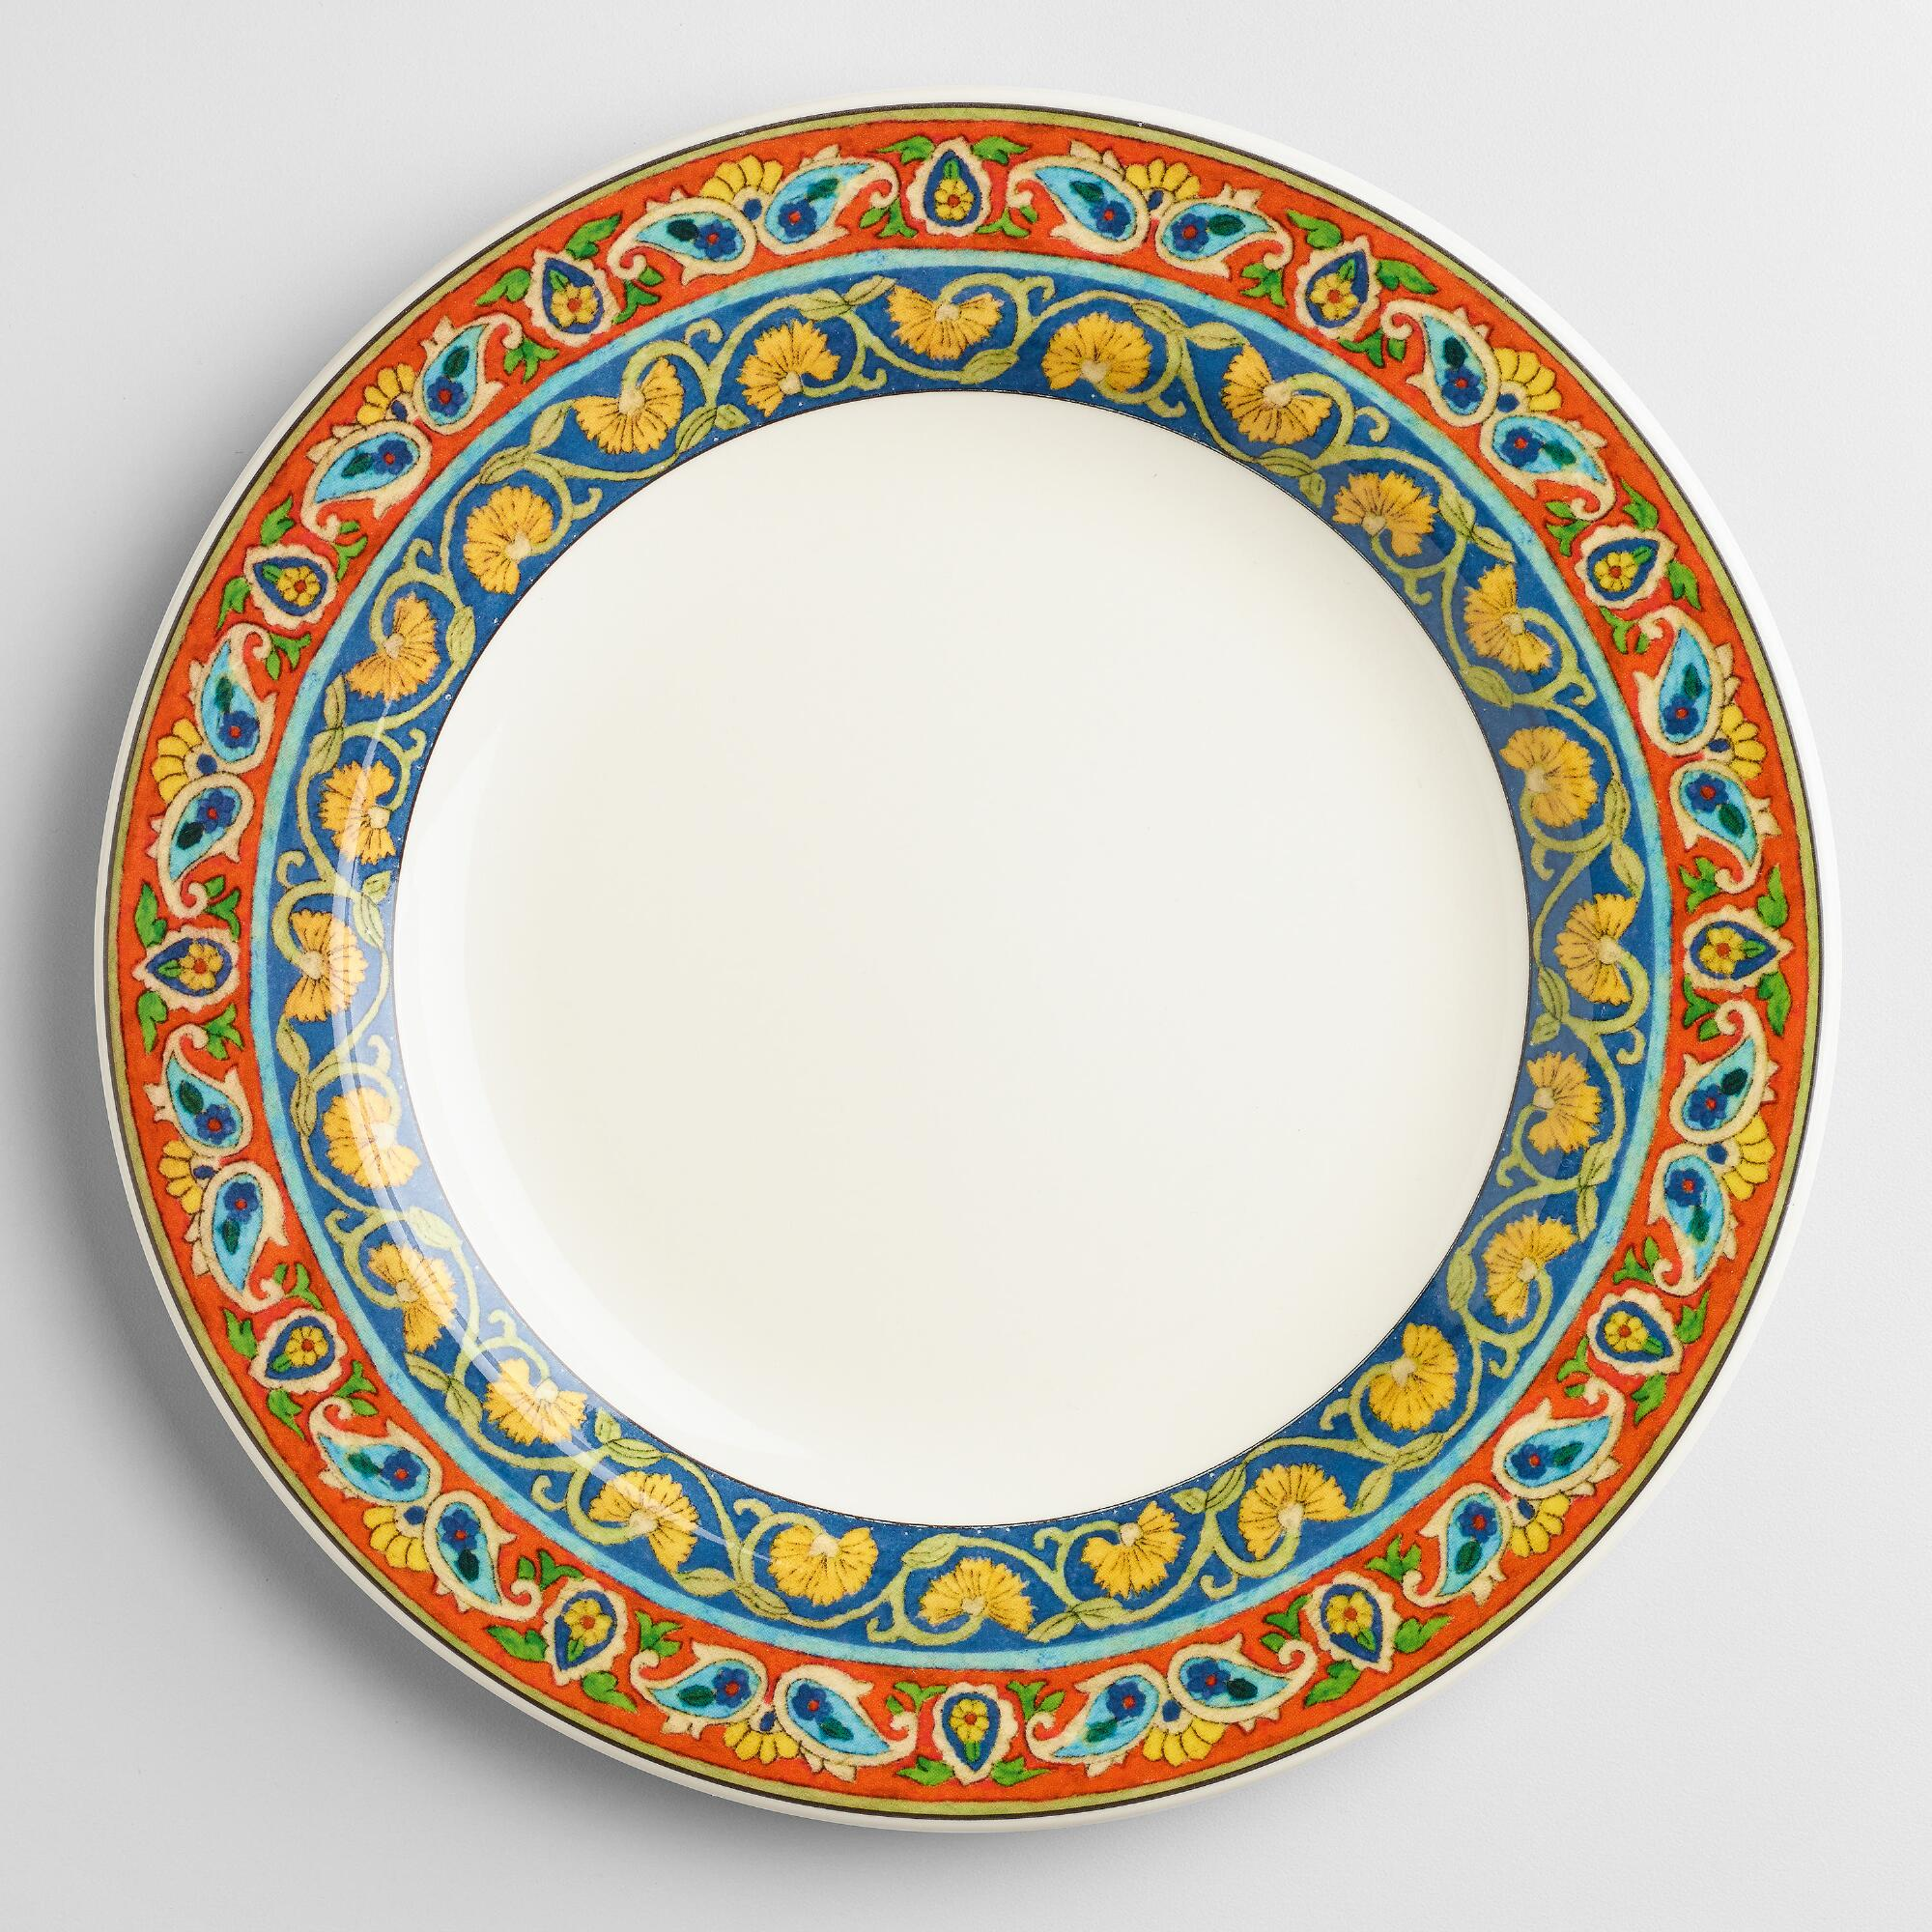 Voyage paige dinner plates set of world market